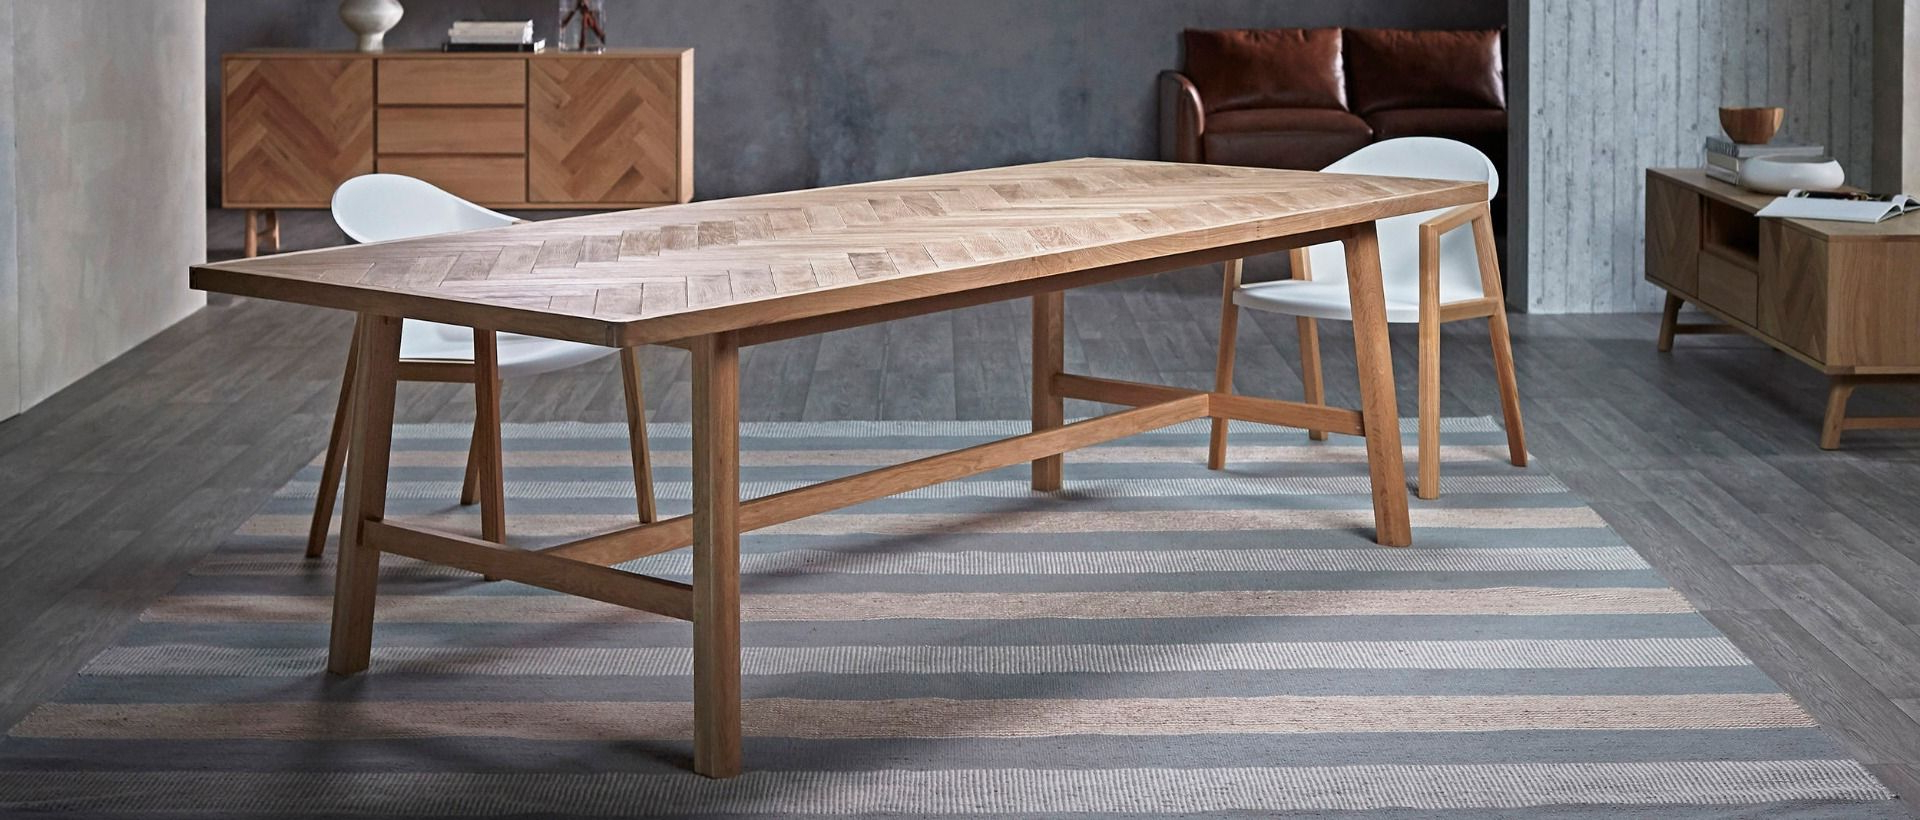 Nick Scali With Regard To 6 Seater Retangular Wood Contemporary Dining Tables (View 20 of 25)